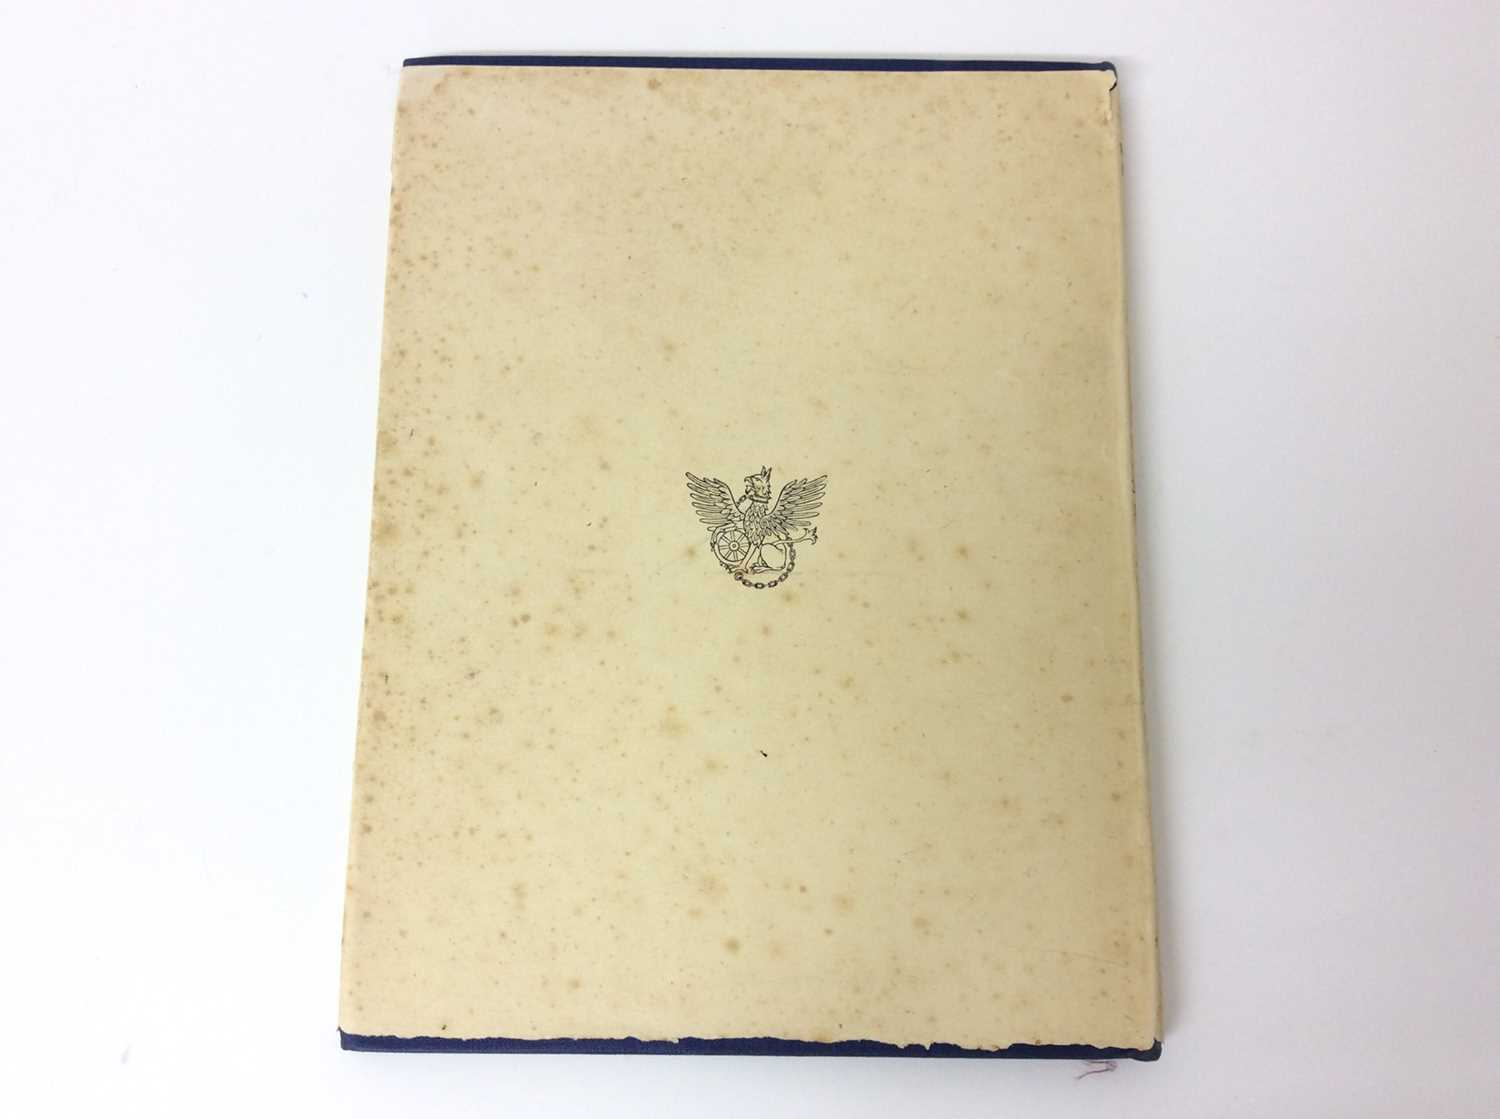 Christopher Sandeman - Thyme and Bergamot, illustrated by John O'Connor, Dropmore Press, 1947, numbe - Image 10 of 10